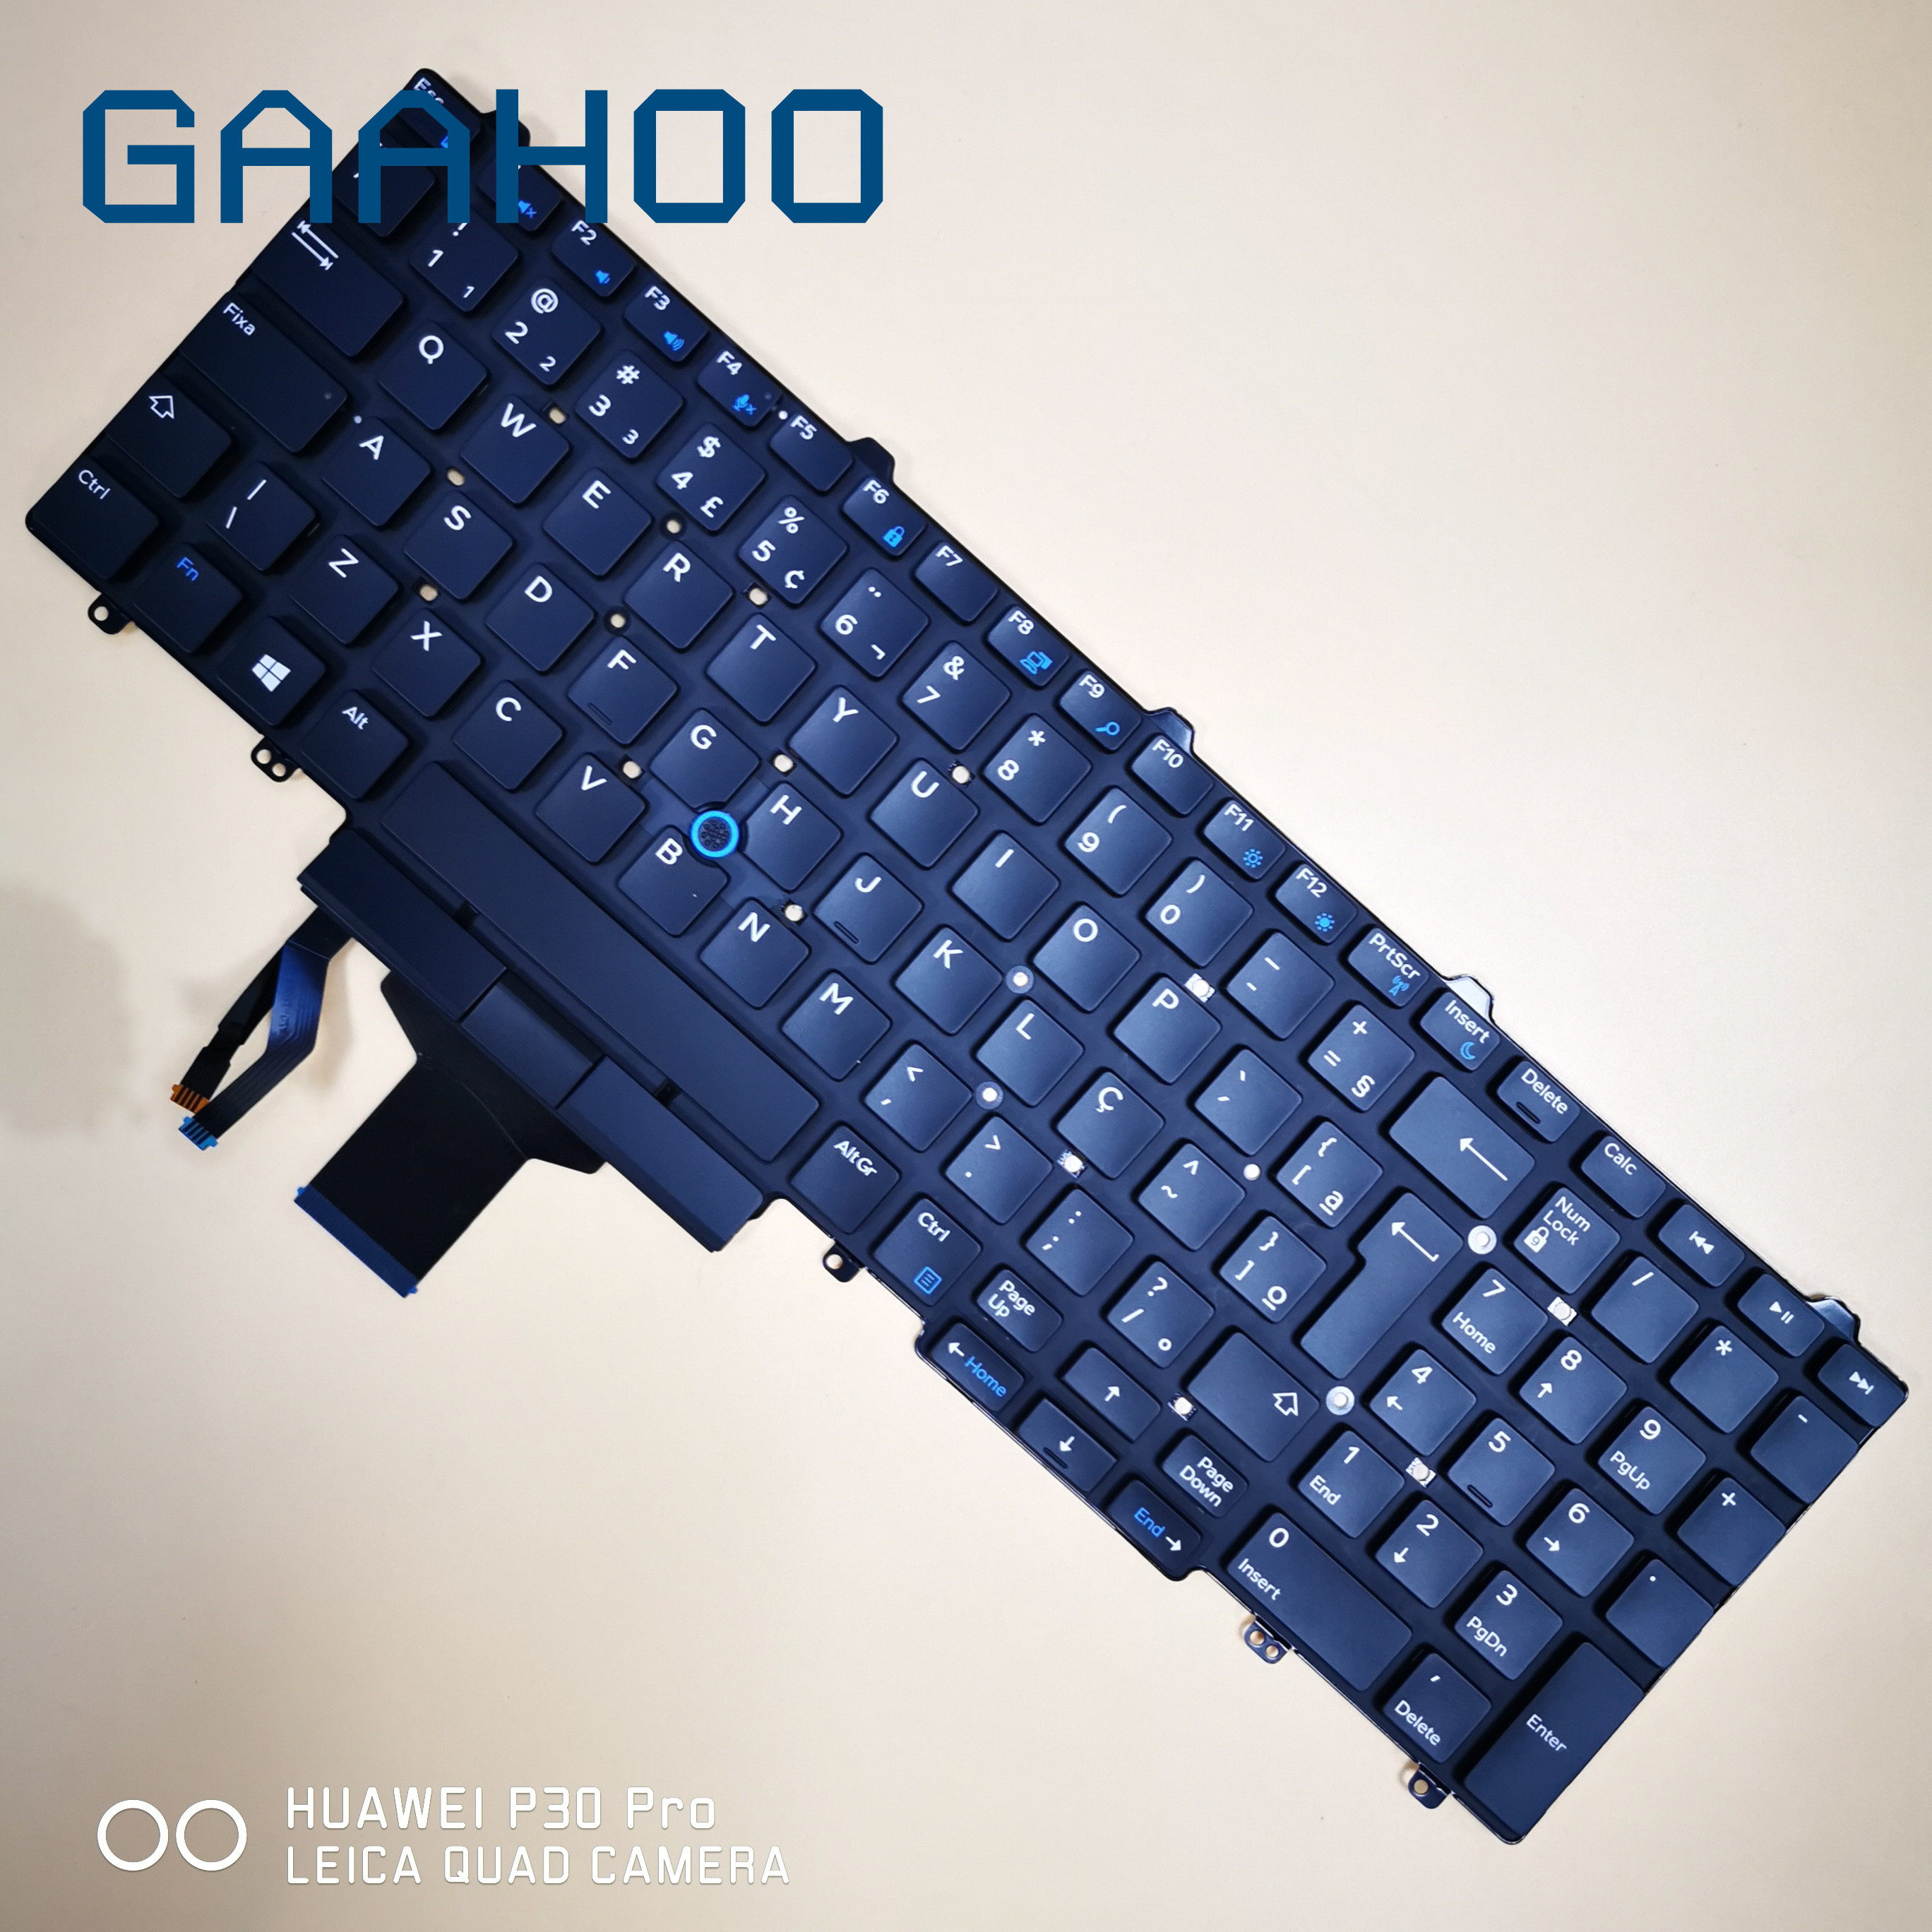 BR BRAZIL <font><b>keyboard</b></font> for <font><b>Dell</b></font> Latitude 5550 5570 5580 5590 5591 PRECISION 3510 <font><b>3520</b></font> 3530 7510 7520 7710 7720 LAPTOP w/ TRUCKPOINT image